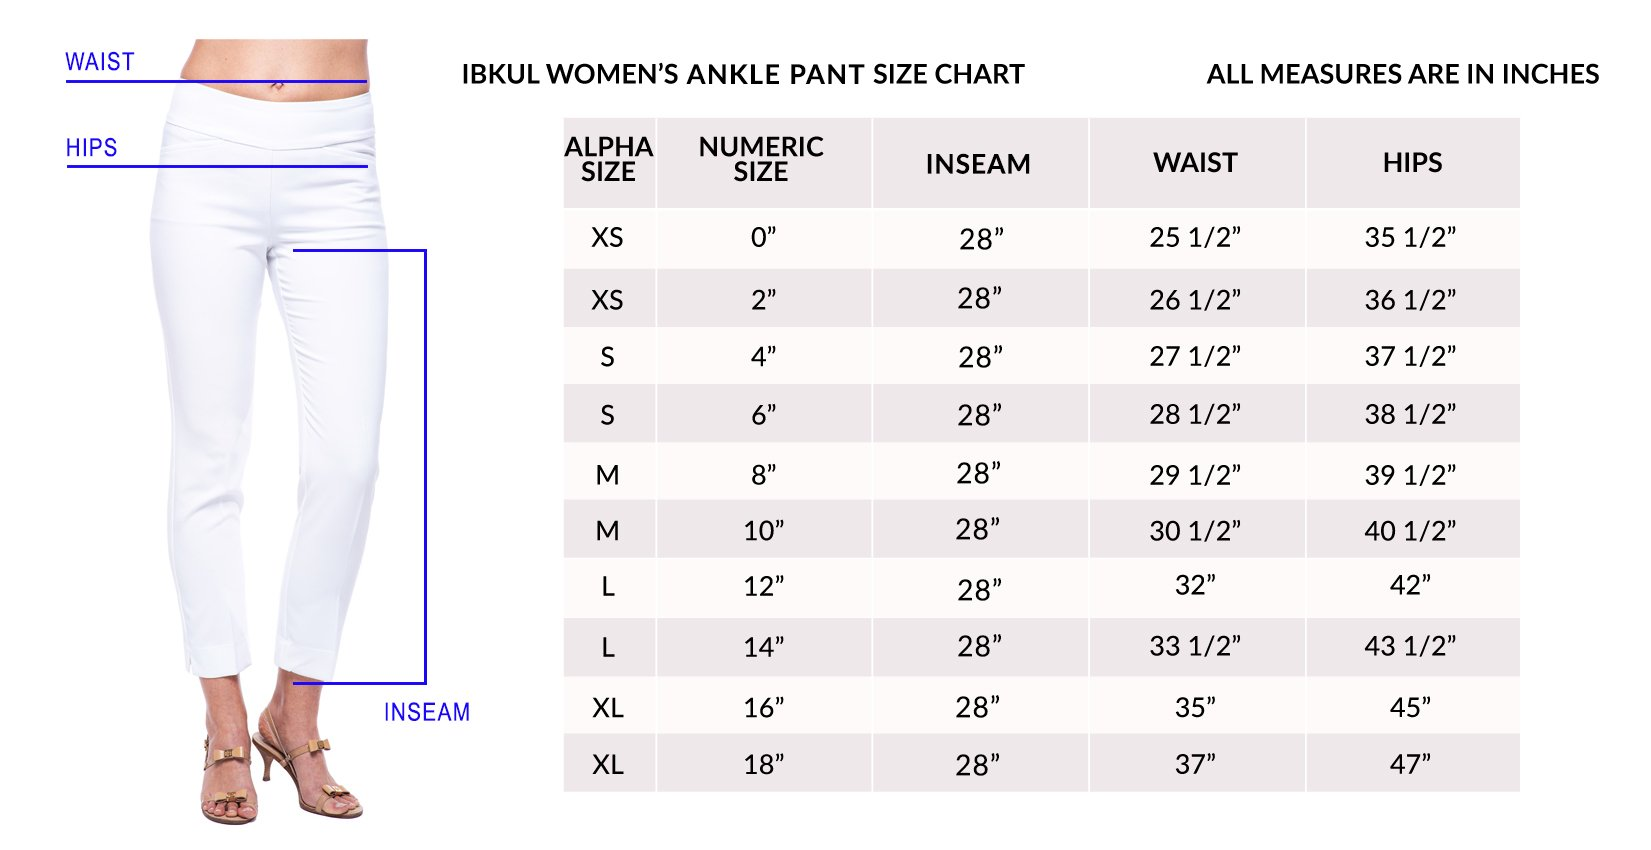 womens-ankle-pants-size-chart.jpg